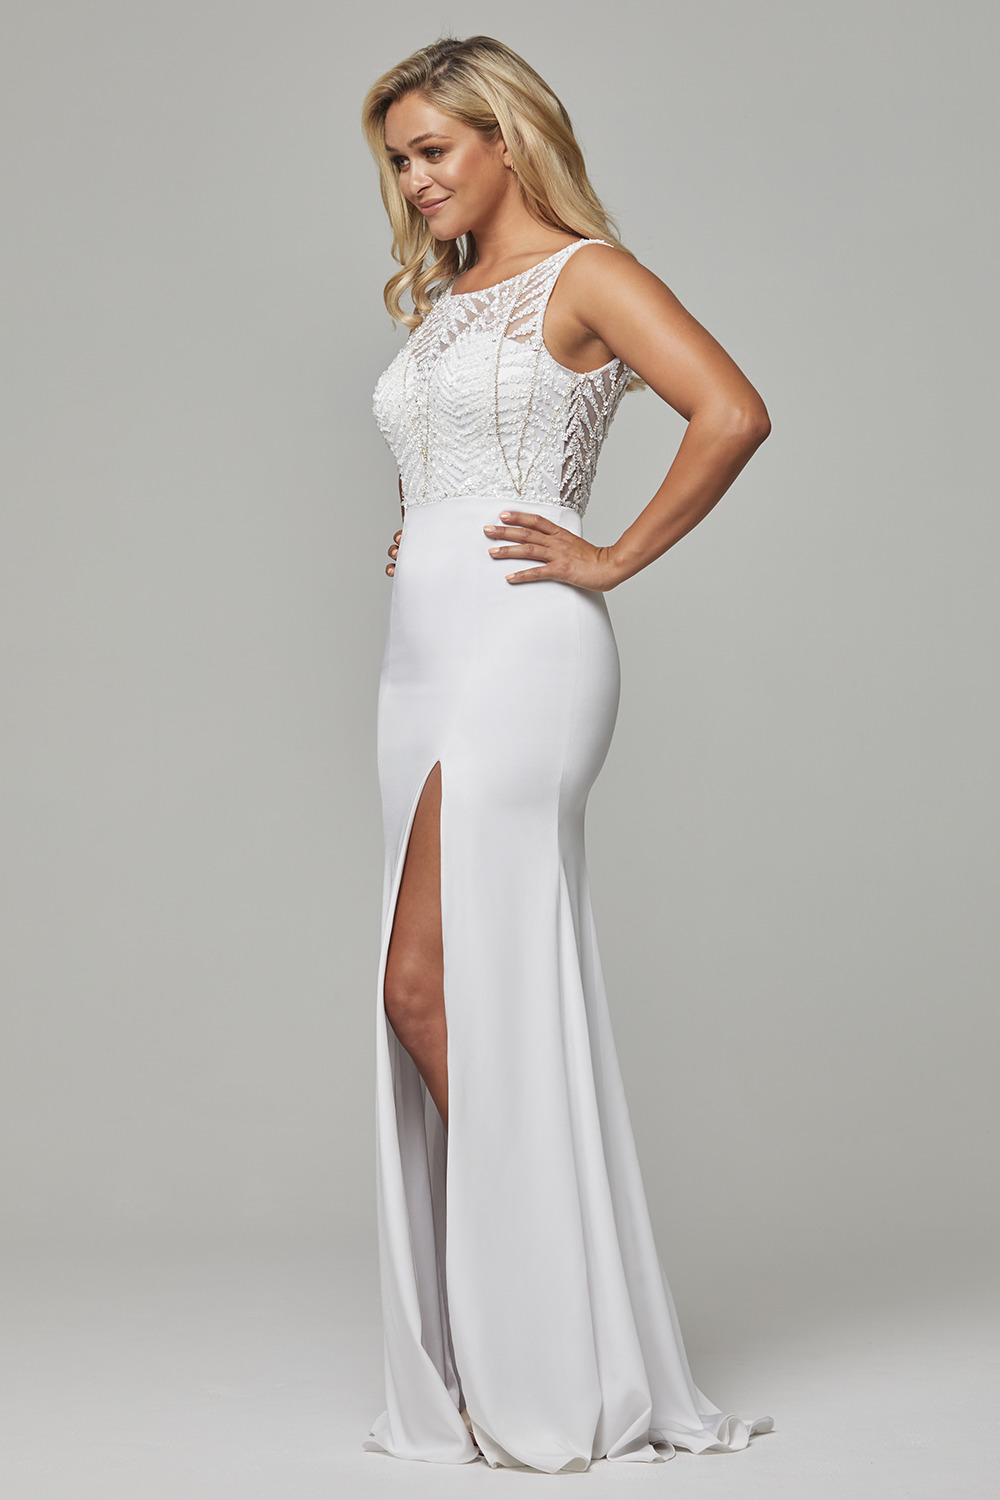 Zaylee beaded low back evening dress PO591 side